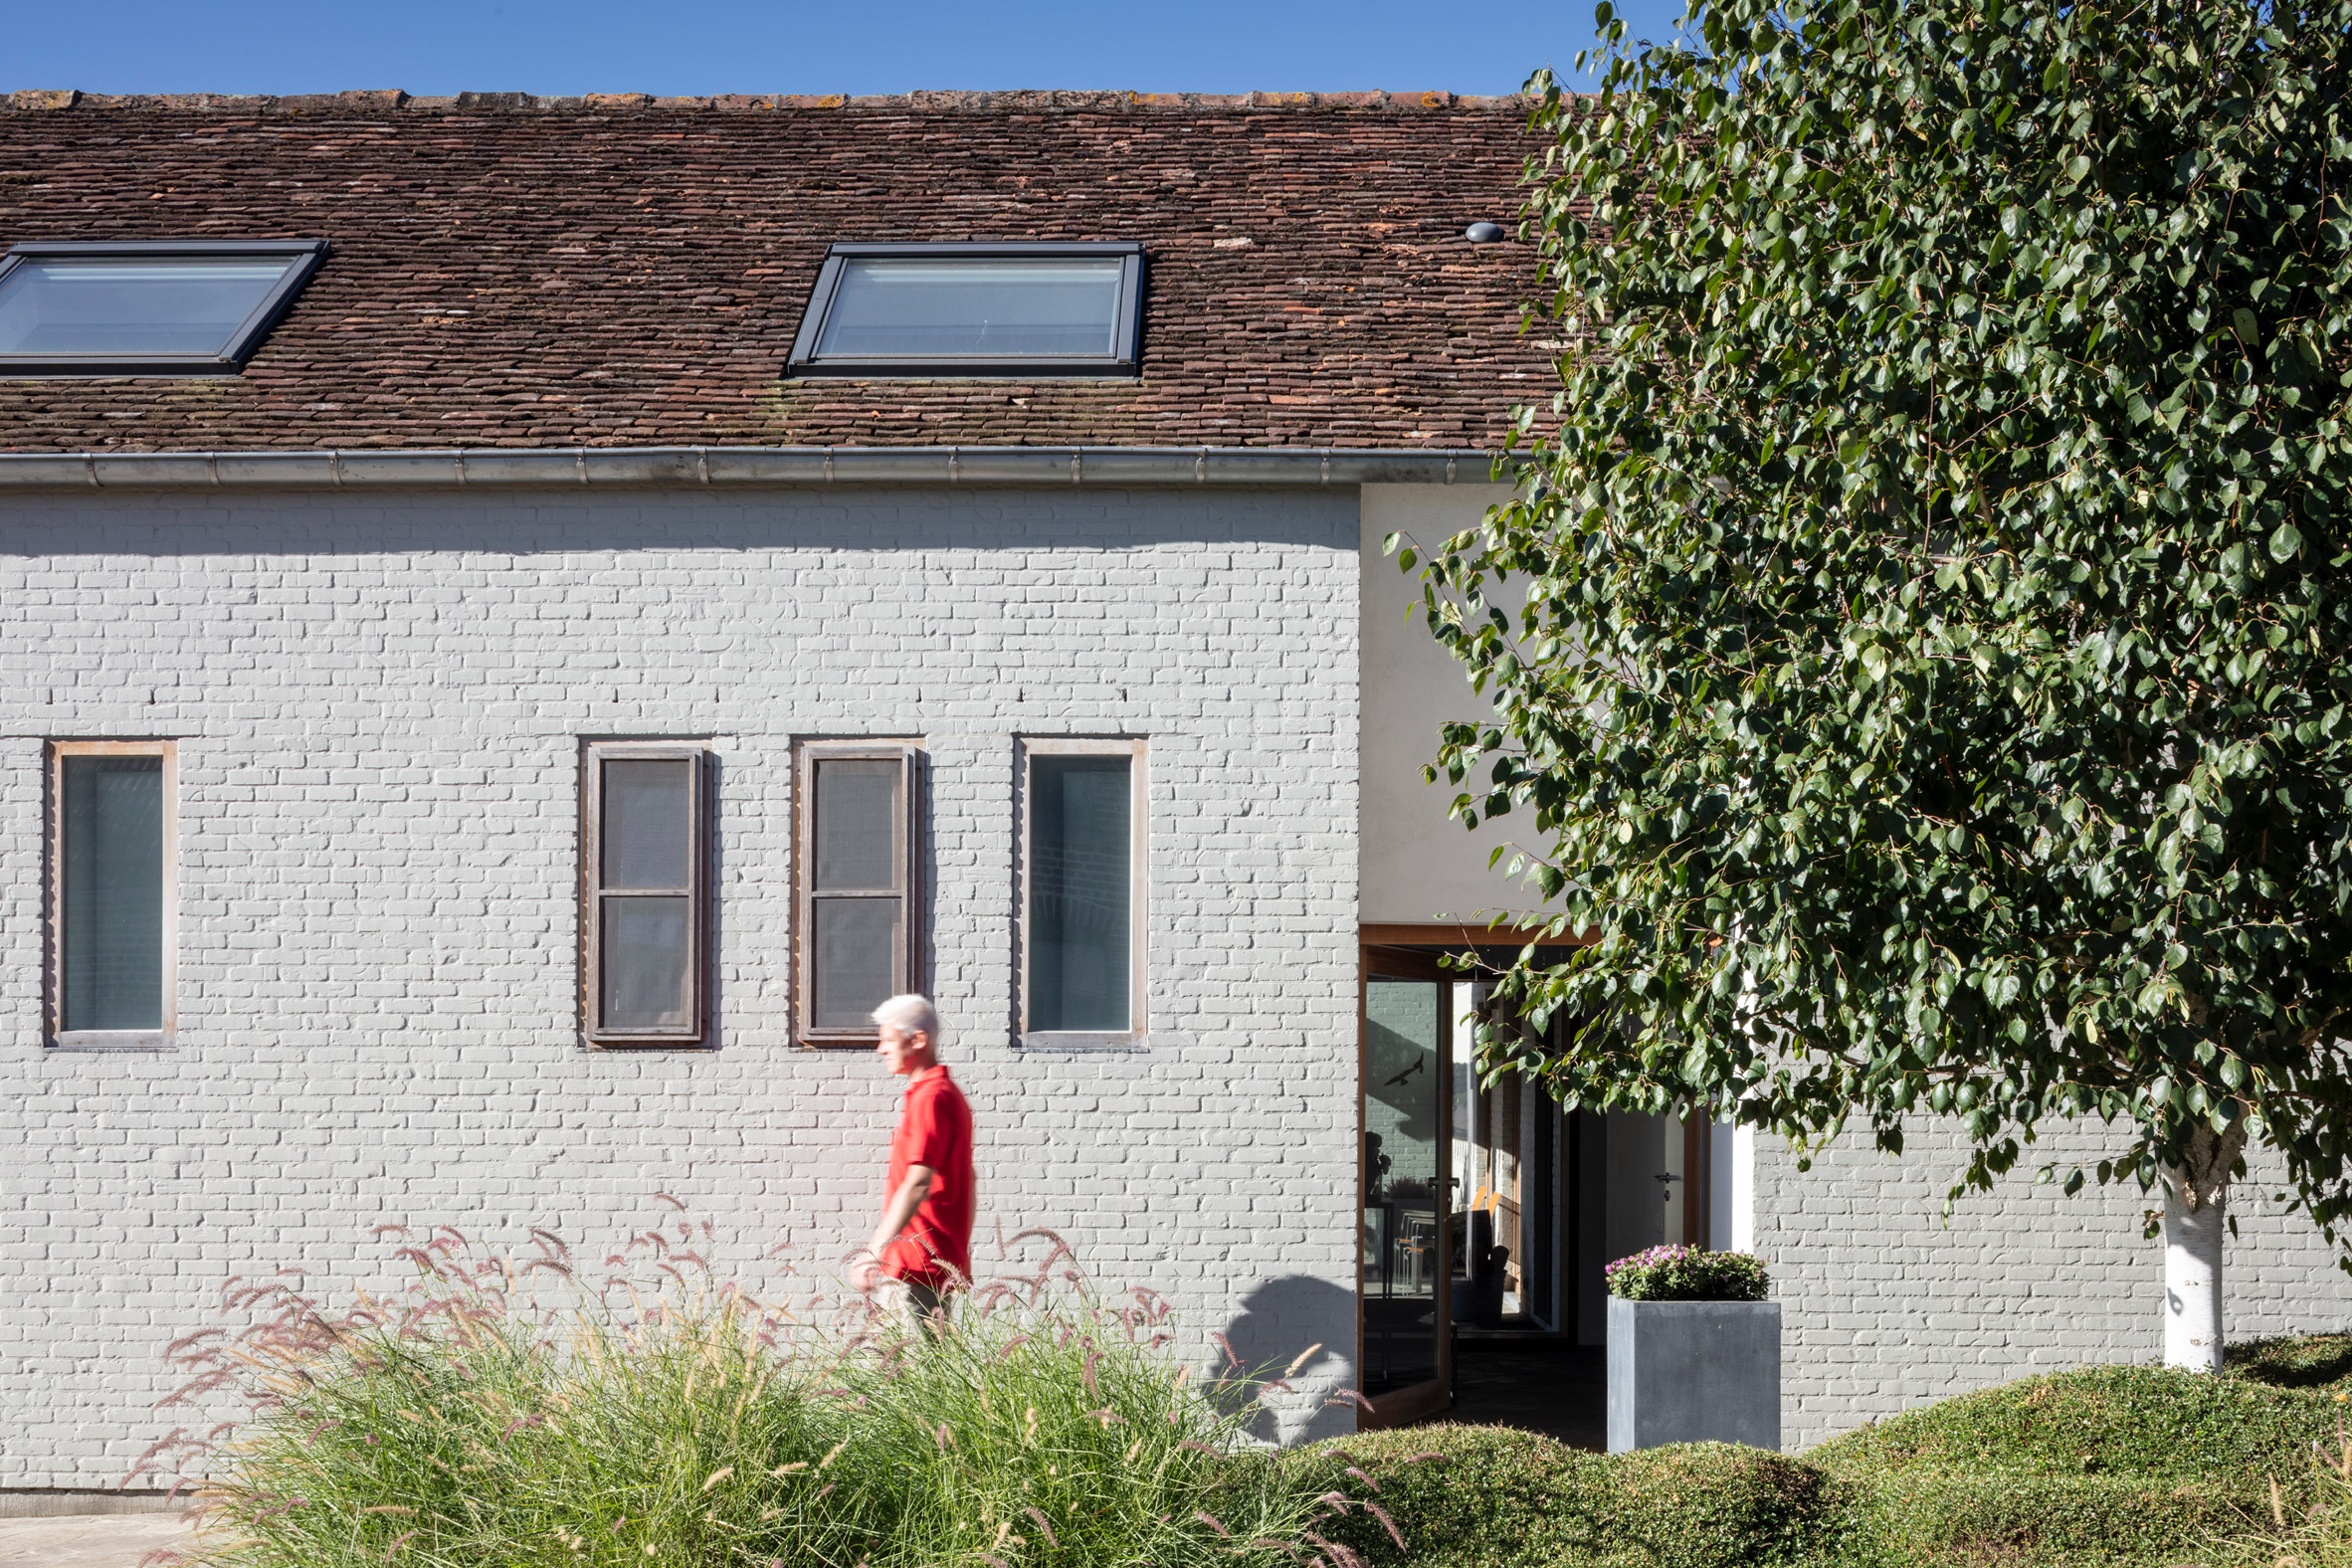 House Nico and Hilde by Atelier Vens Vanbelle